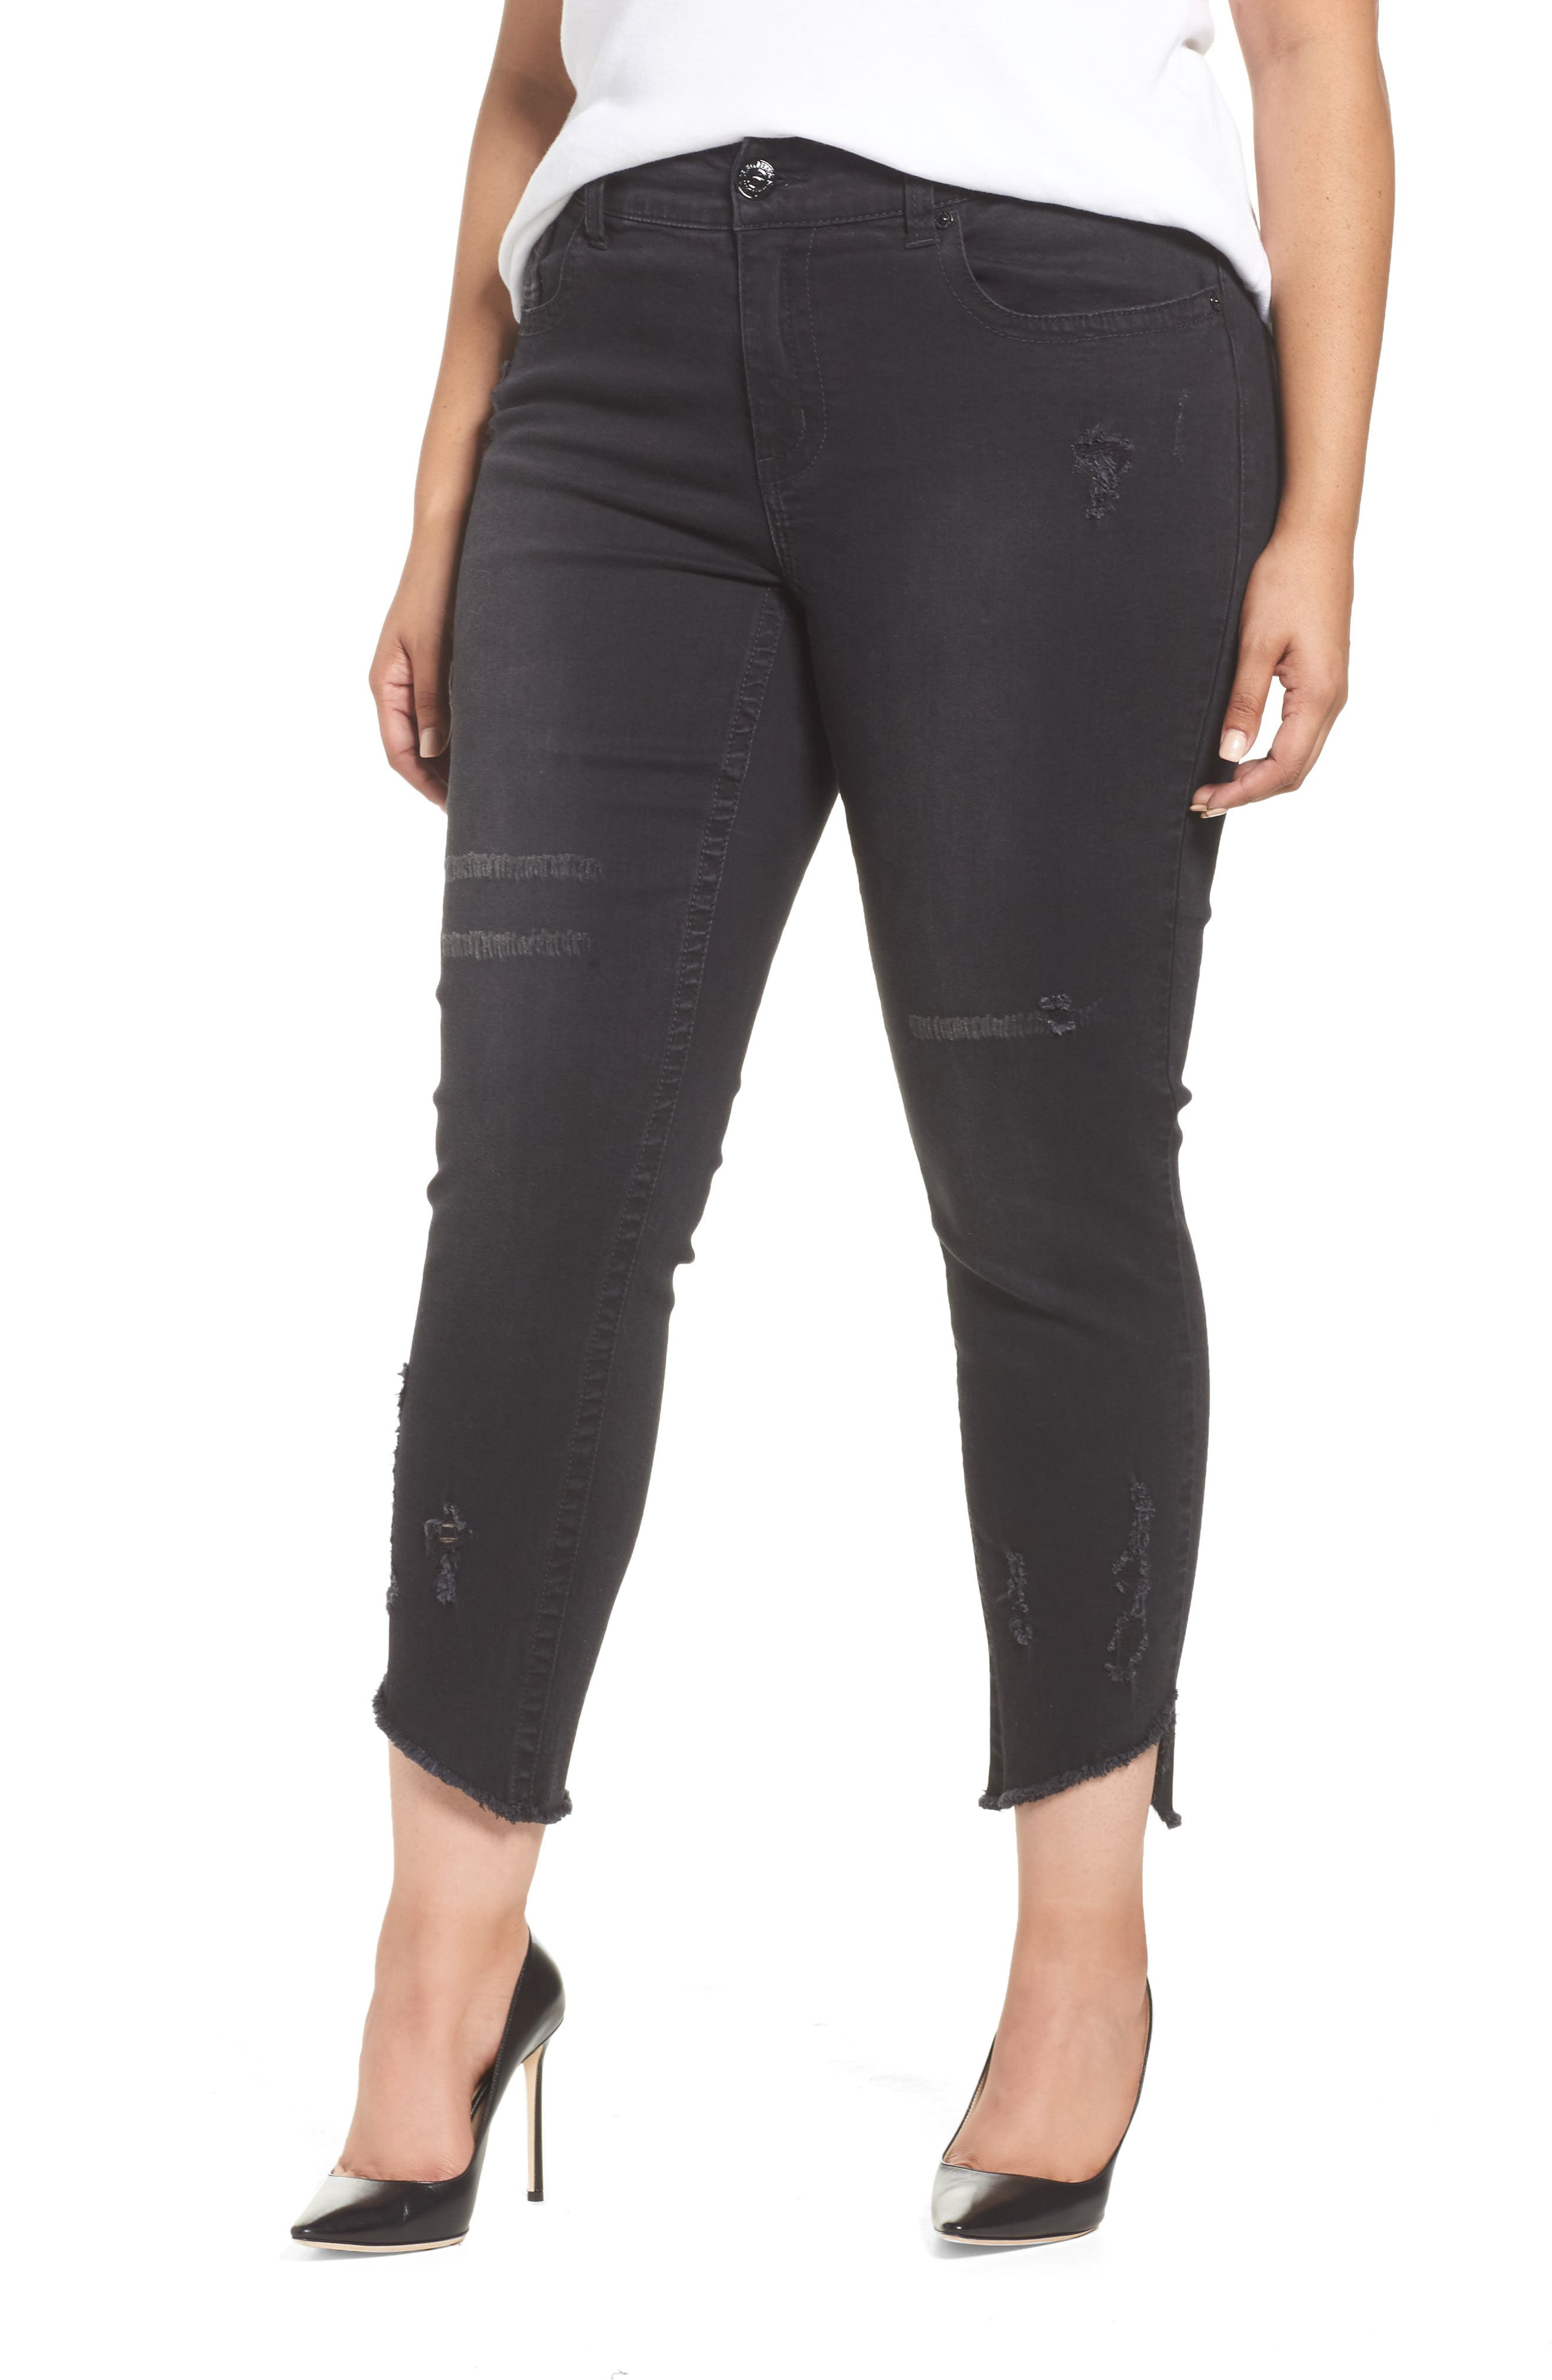 Alternate Image 1 Selected - Seven7 Distressed Slant Raw Hem Skinny Jeans (Plus Size)